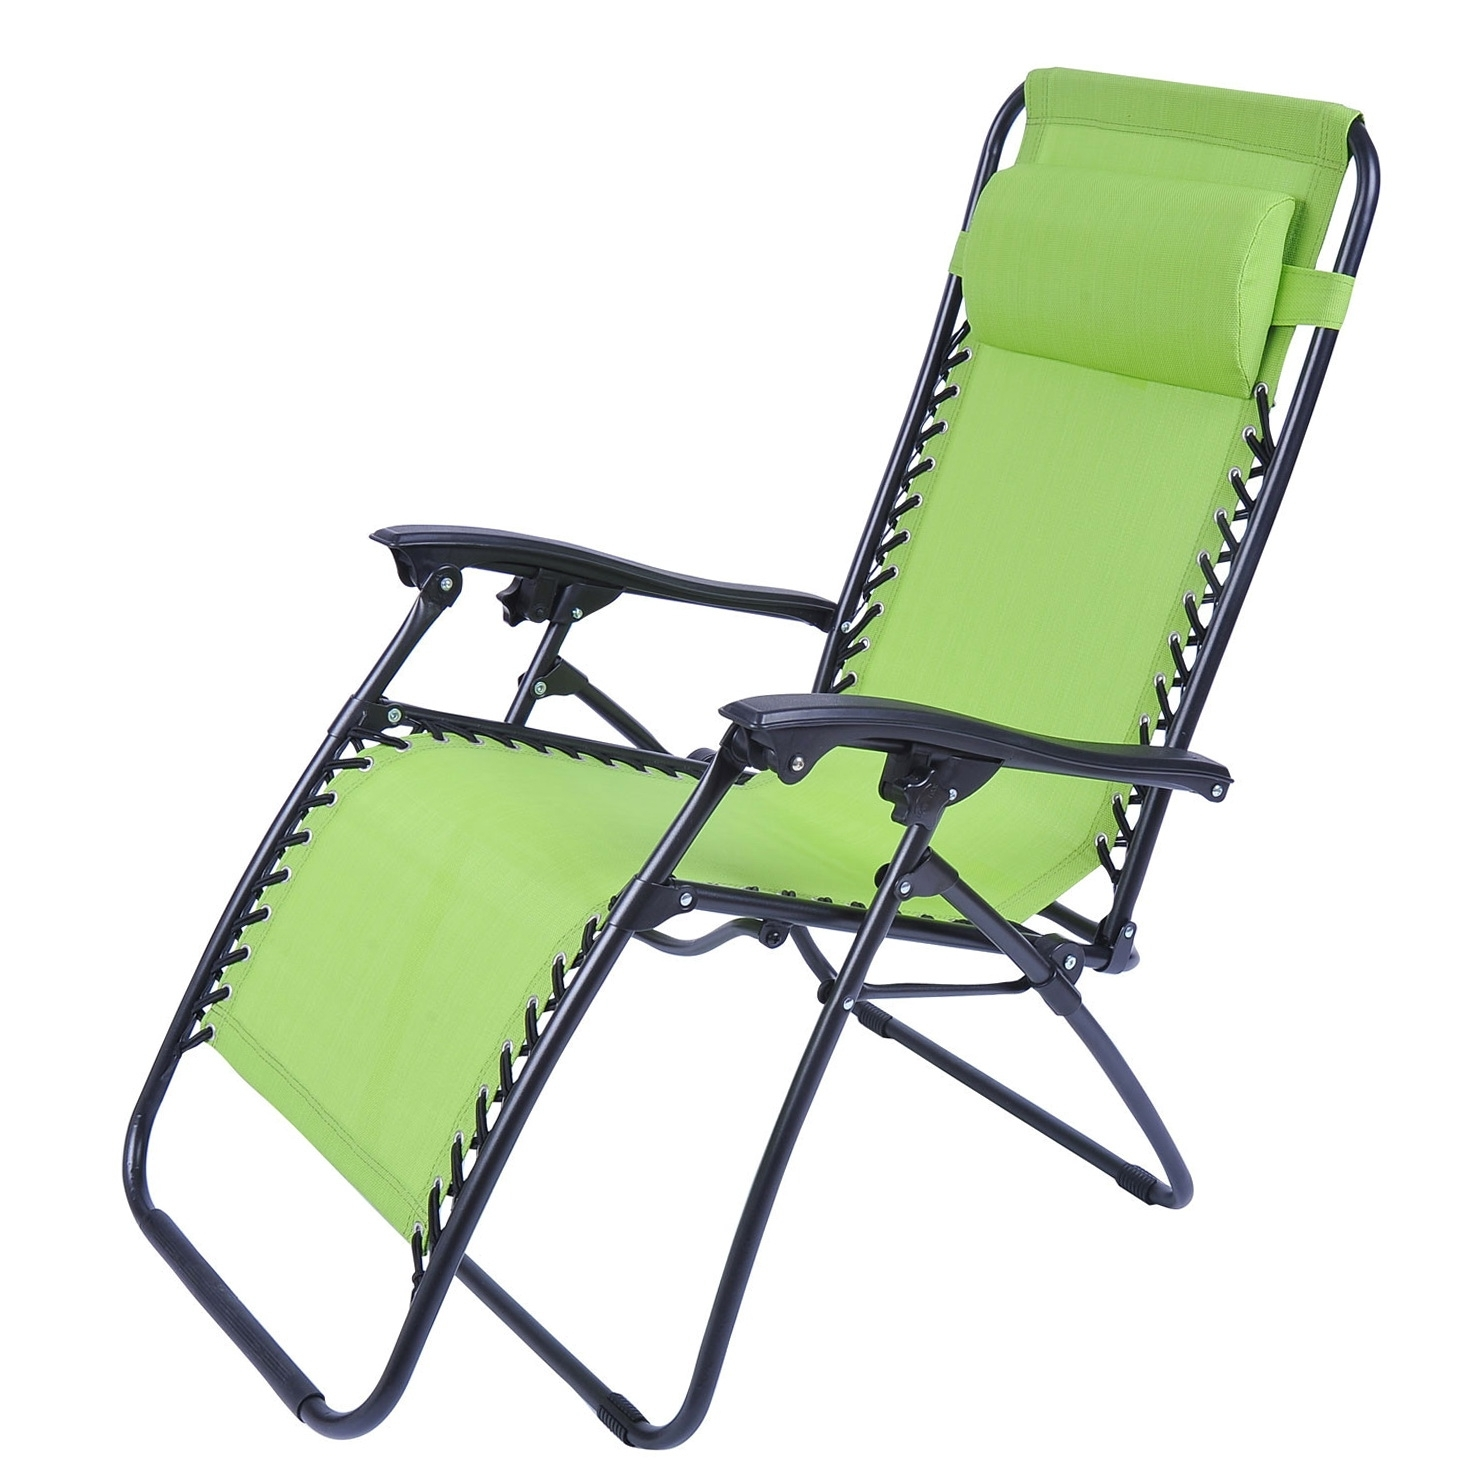 Zero Gravity Chaise Lounges Inside Well Known Folding Chaise Lounge Chair Patio Outdoor Pool Beach Lawn Recliner (Gallery 9 of 15)